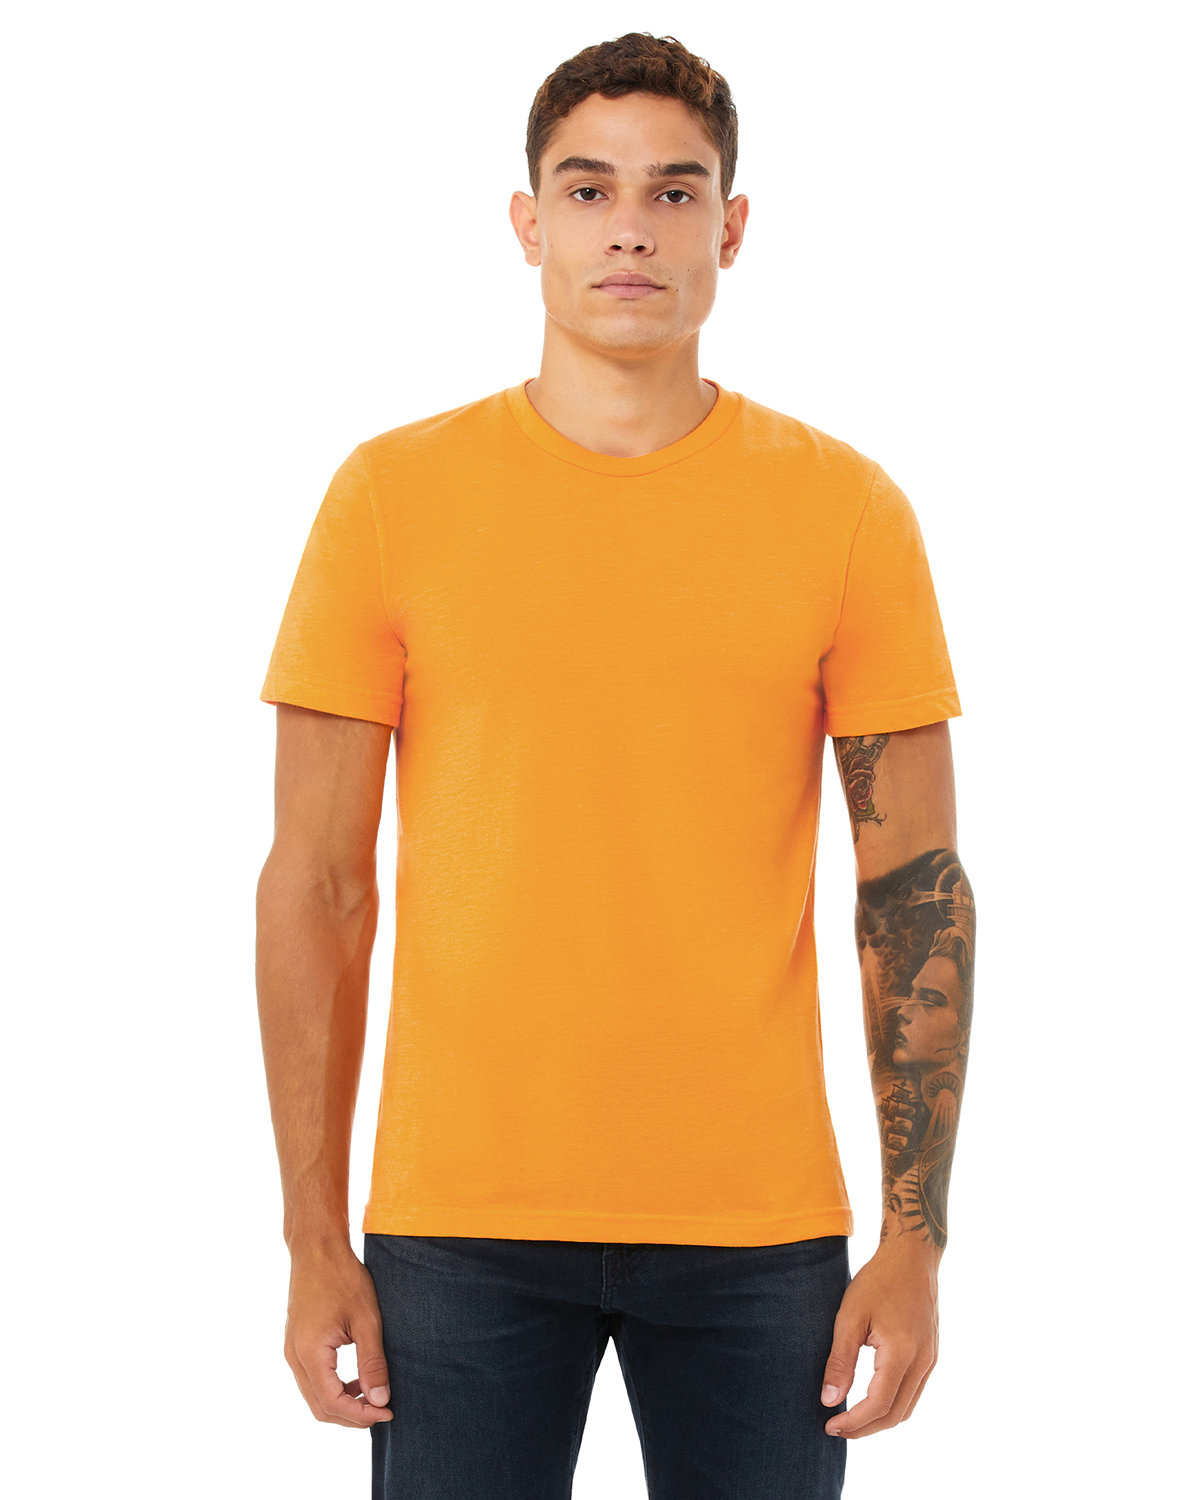 Bella + Canvas Unisex Heather CVC T-Shirt HEATHR MARMALADE